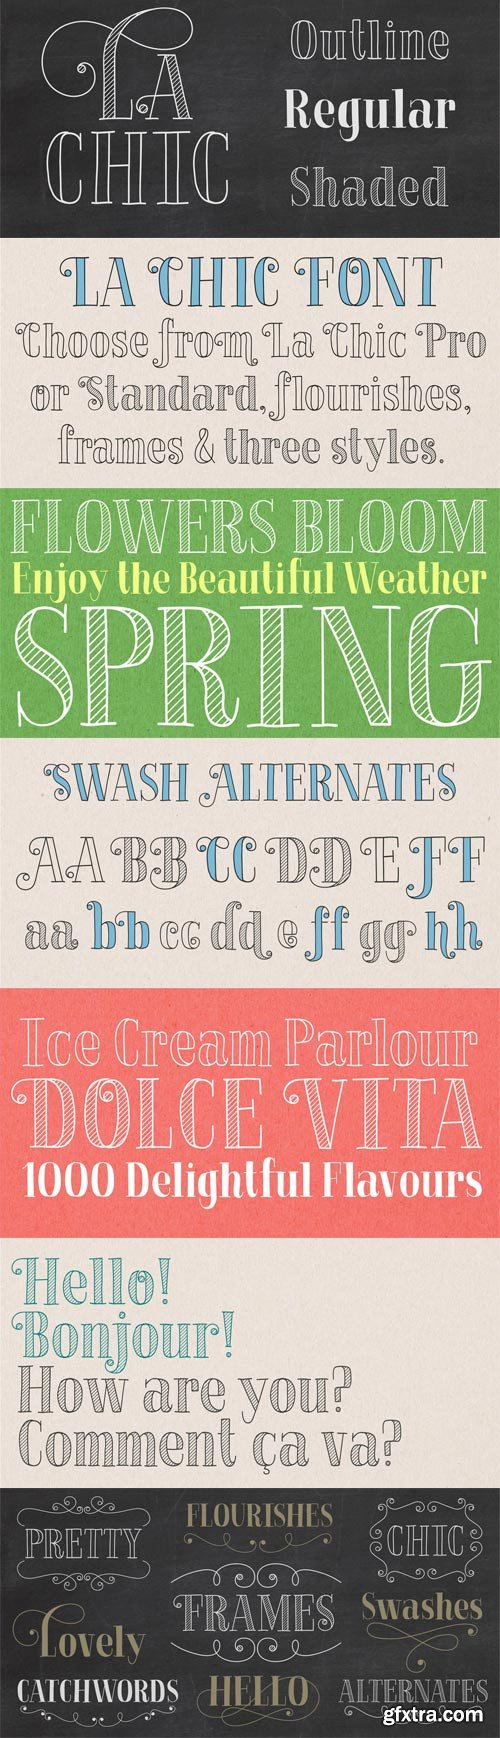 La Chic Font Family - 12 Fonts for $221